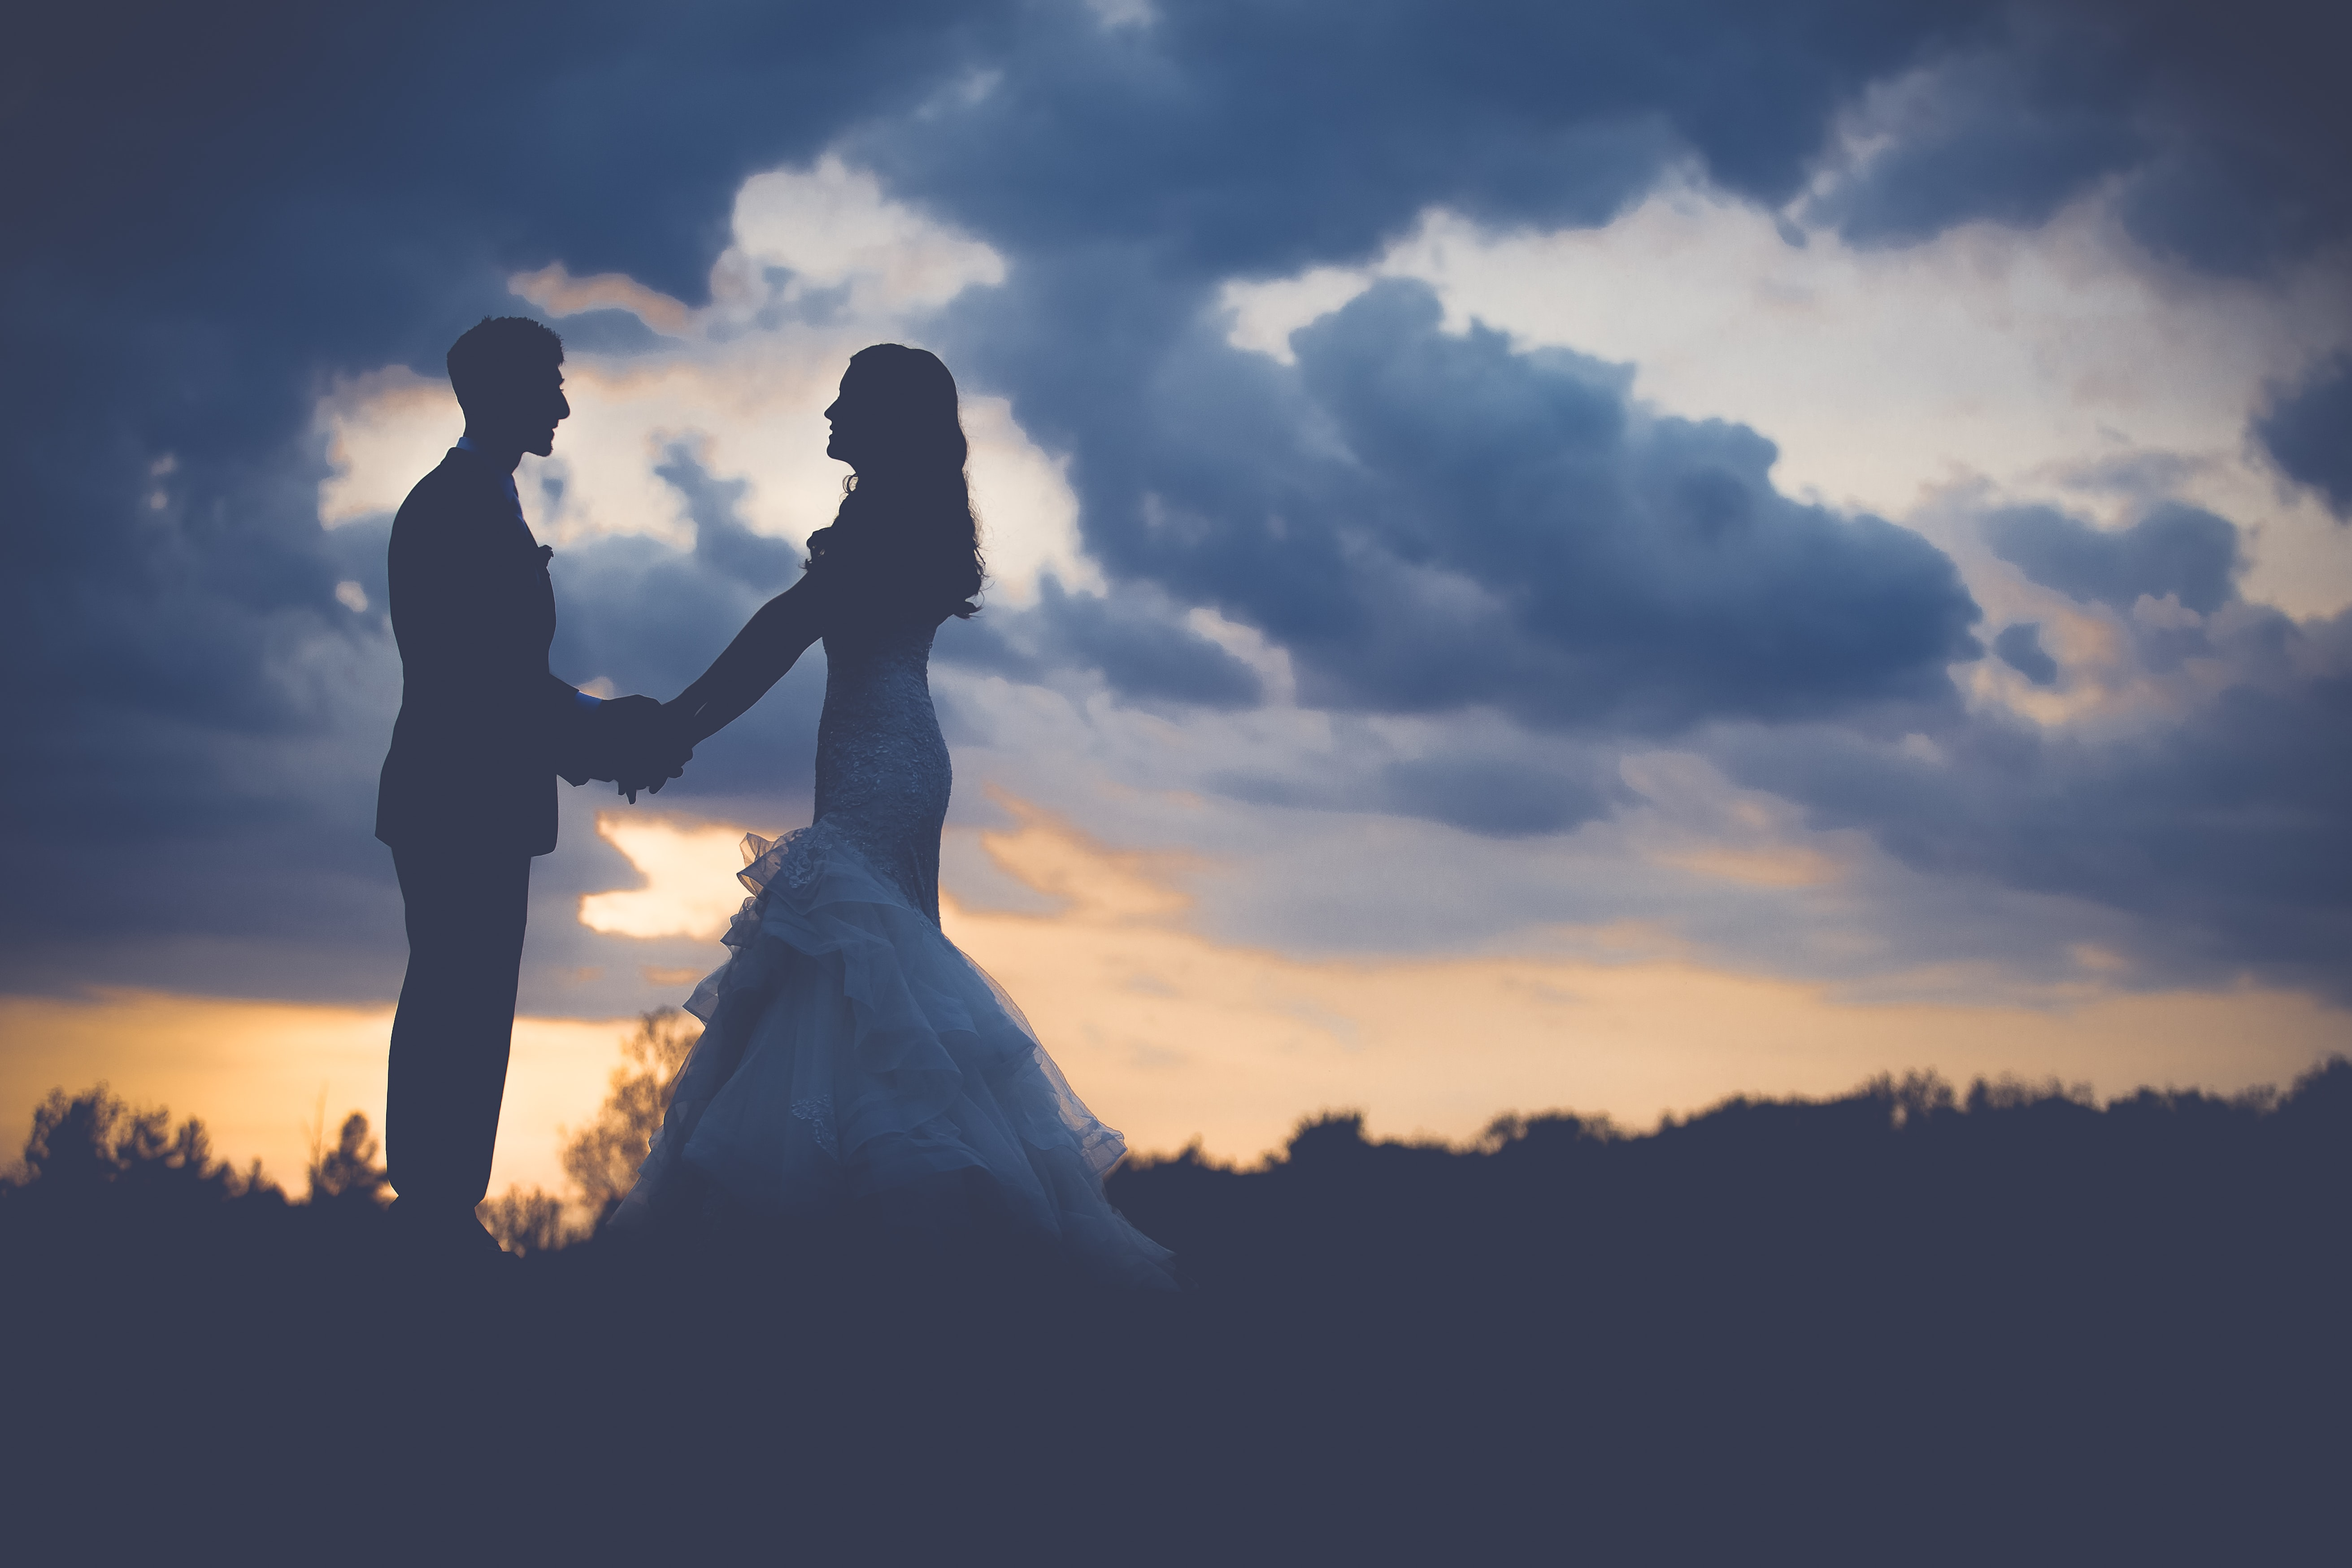 silhouette of man and woman standing under cloudy skies during orange sunset